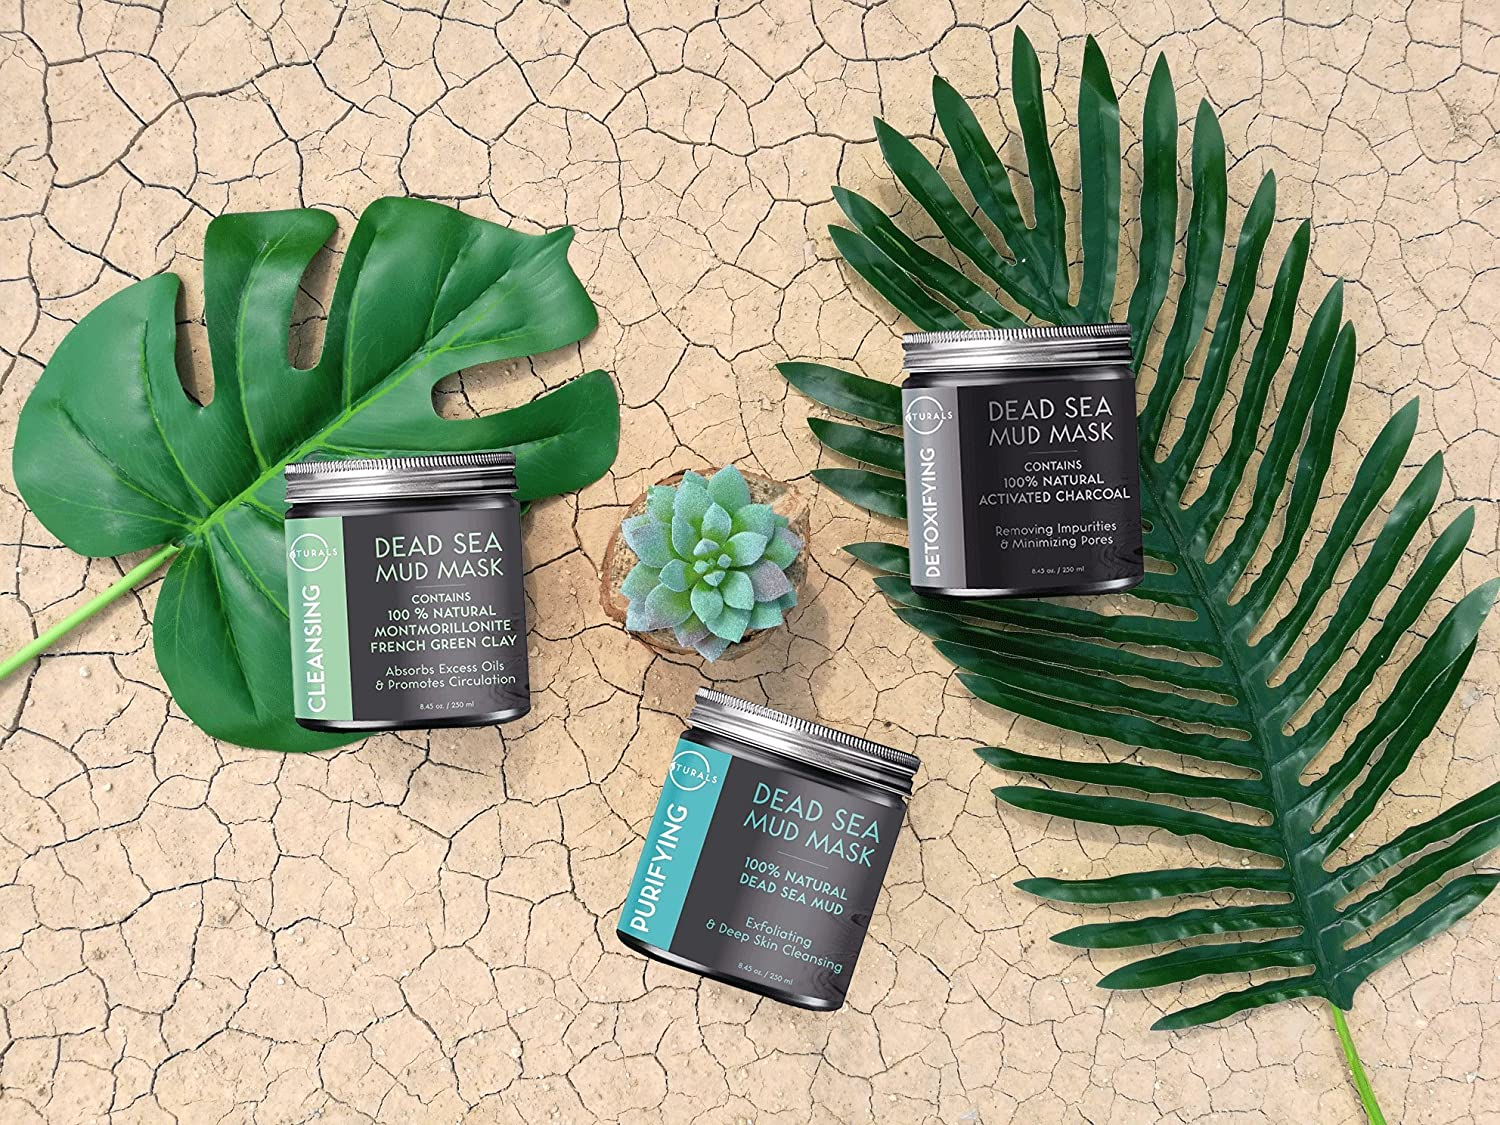 2a205833f84 Amazon.com   O Naturals Dead Sea Mud Mask with French Green Clay 100%  Natural Vegan Cleansing Face   Body Mask. Exfoliating